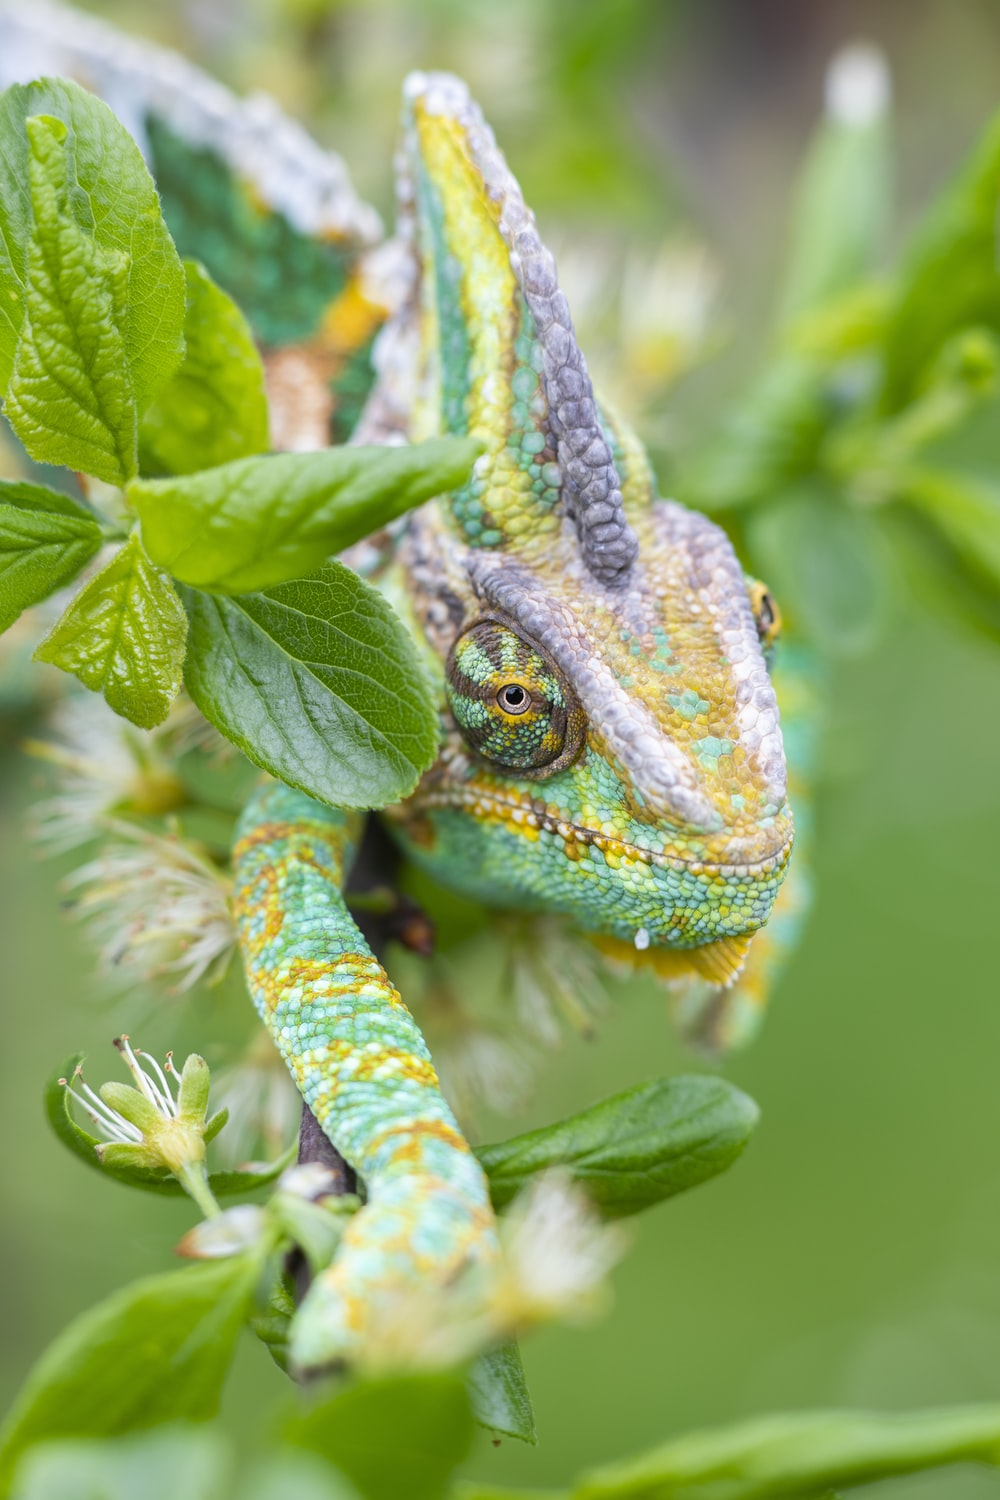 green and blue chameleon on green plant